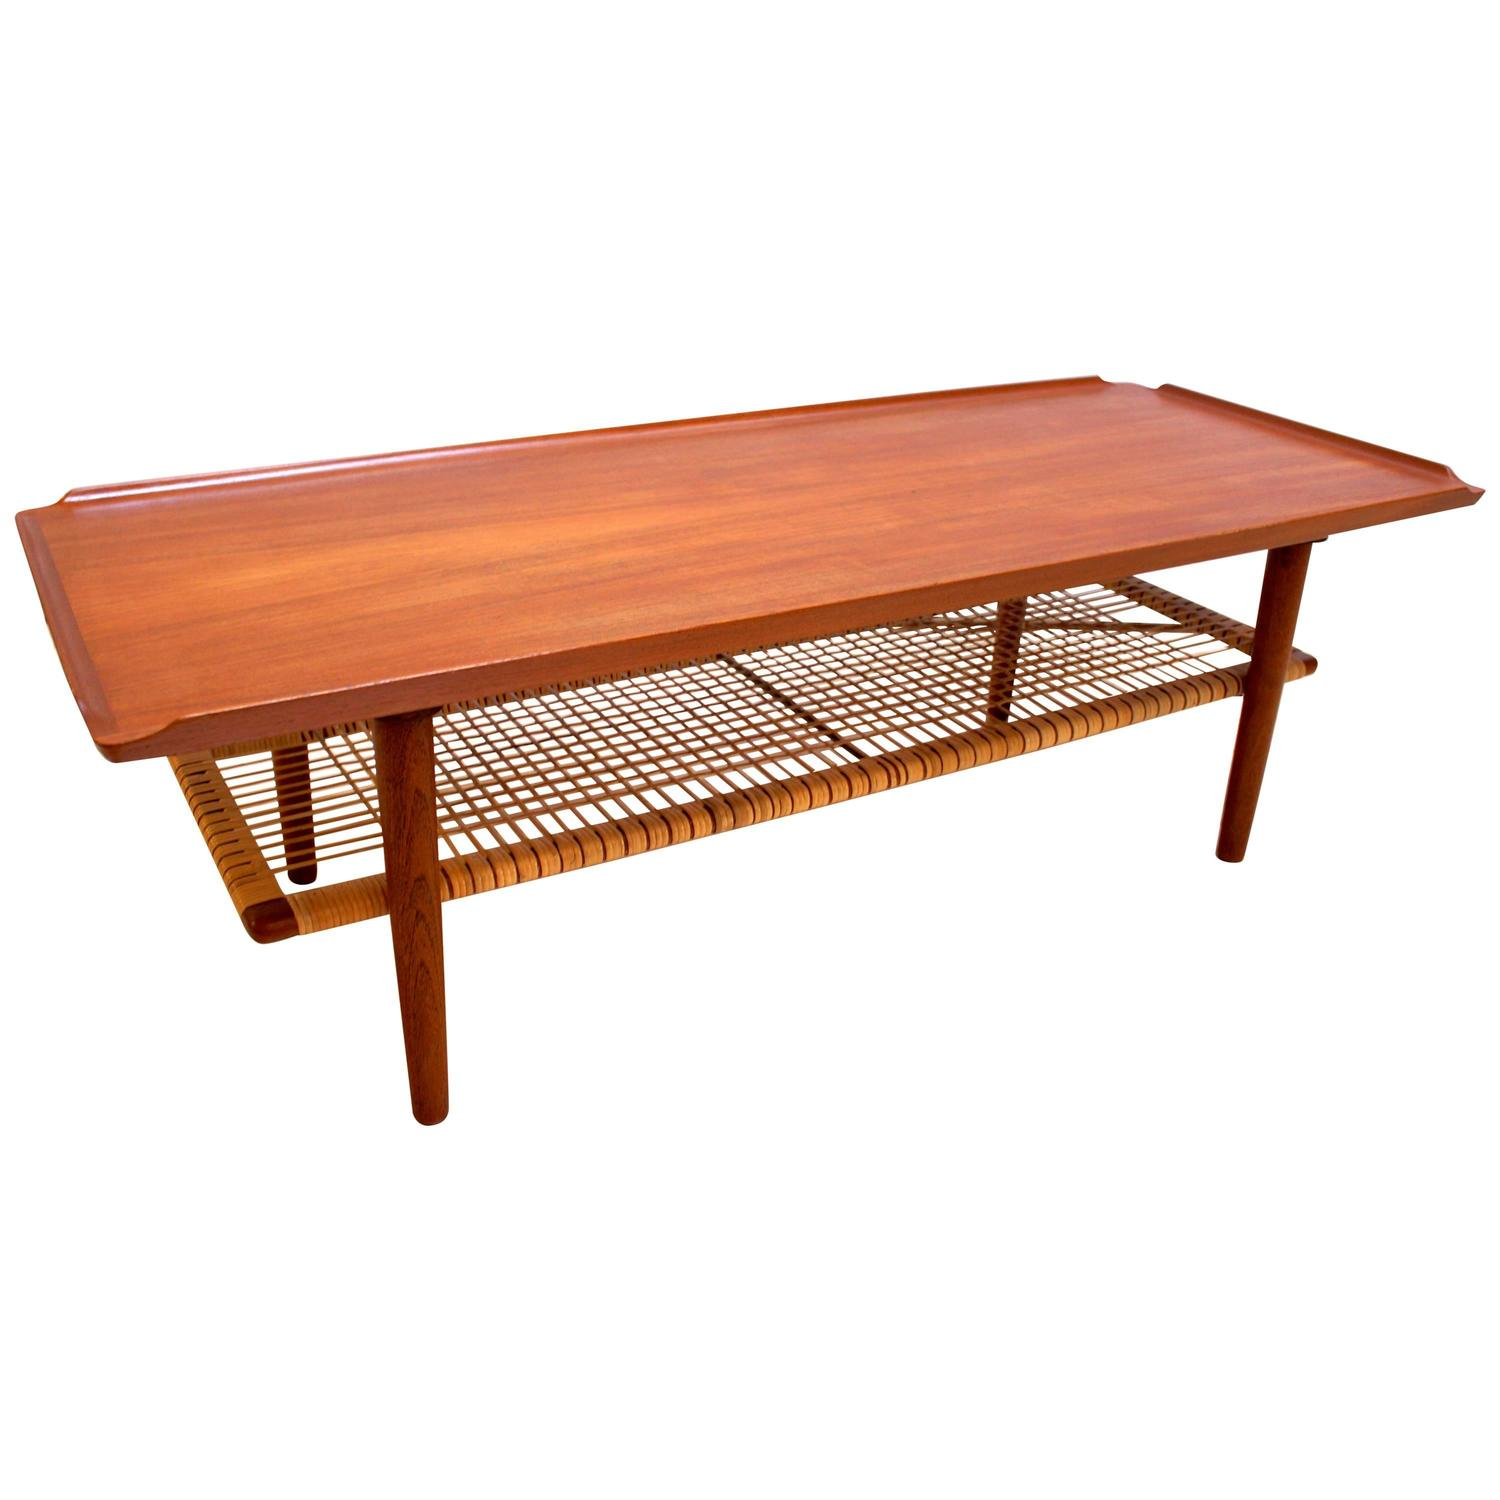 Scandinavian Teak Coffee Table: Danish Modern Poul Jensen Teak Coffee Table At 1stdibs